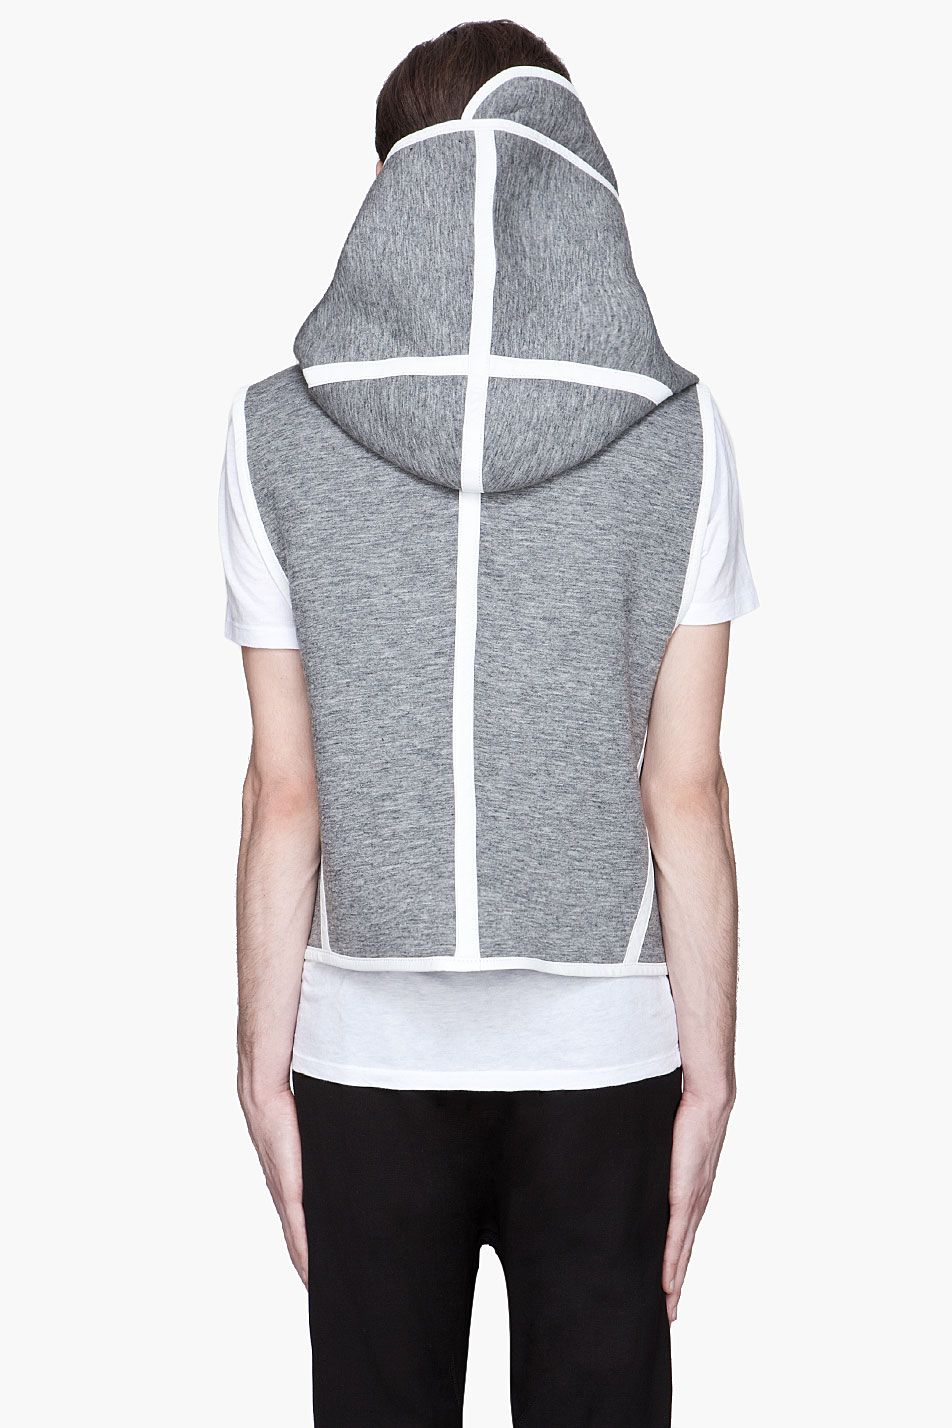 DENIS GAGNON Grey and white hooded ZipUp Vest